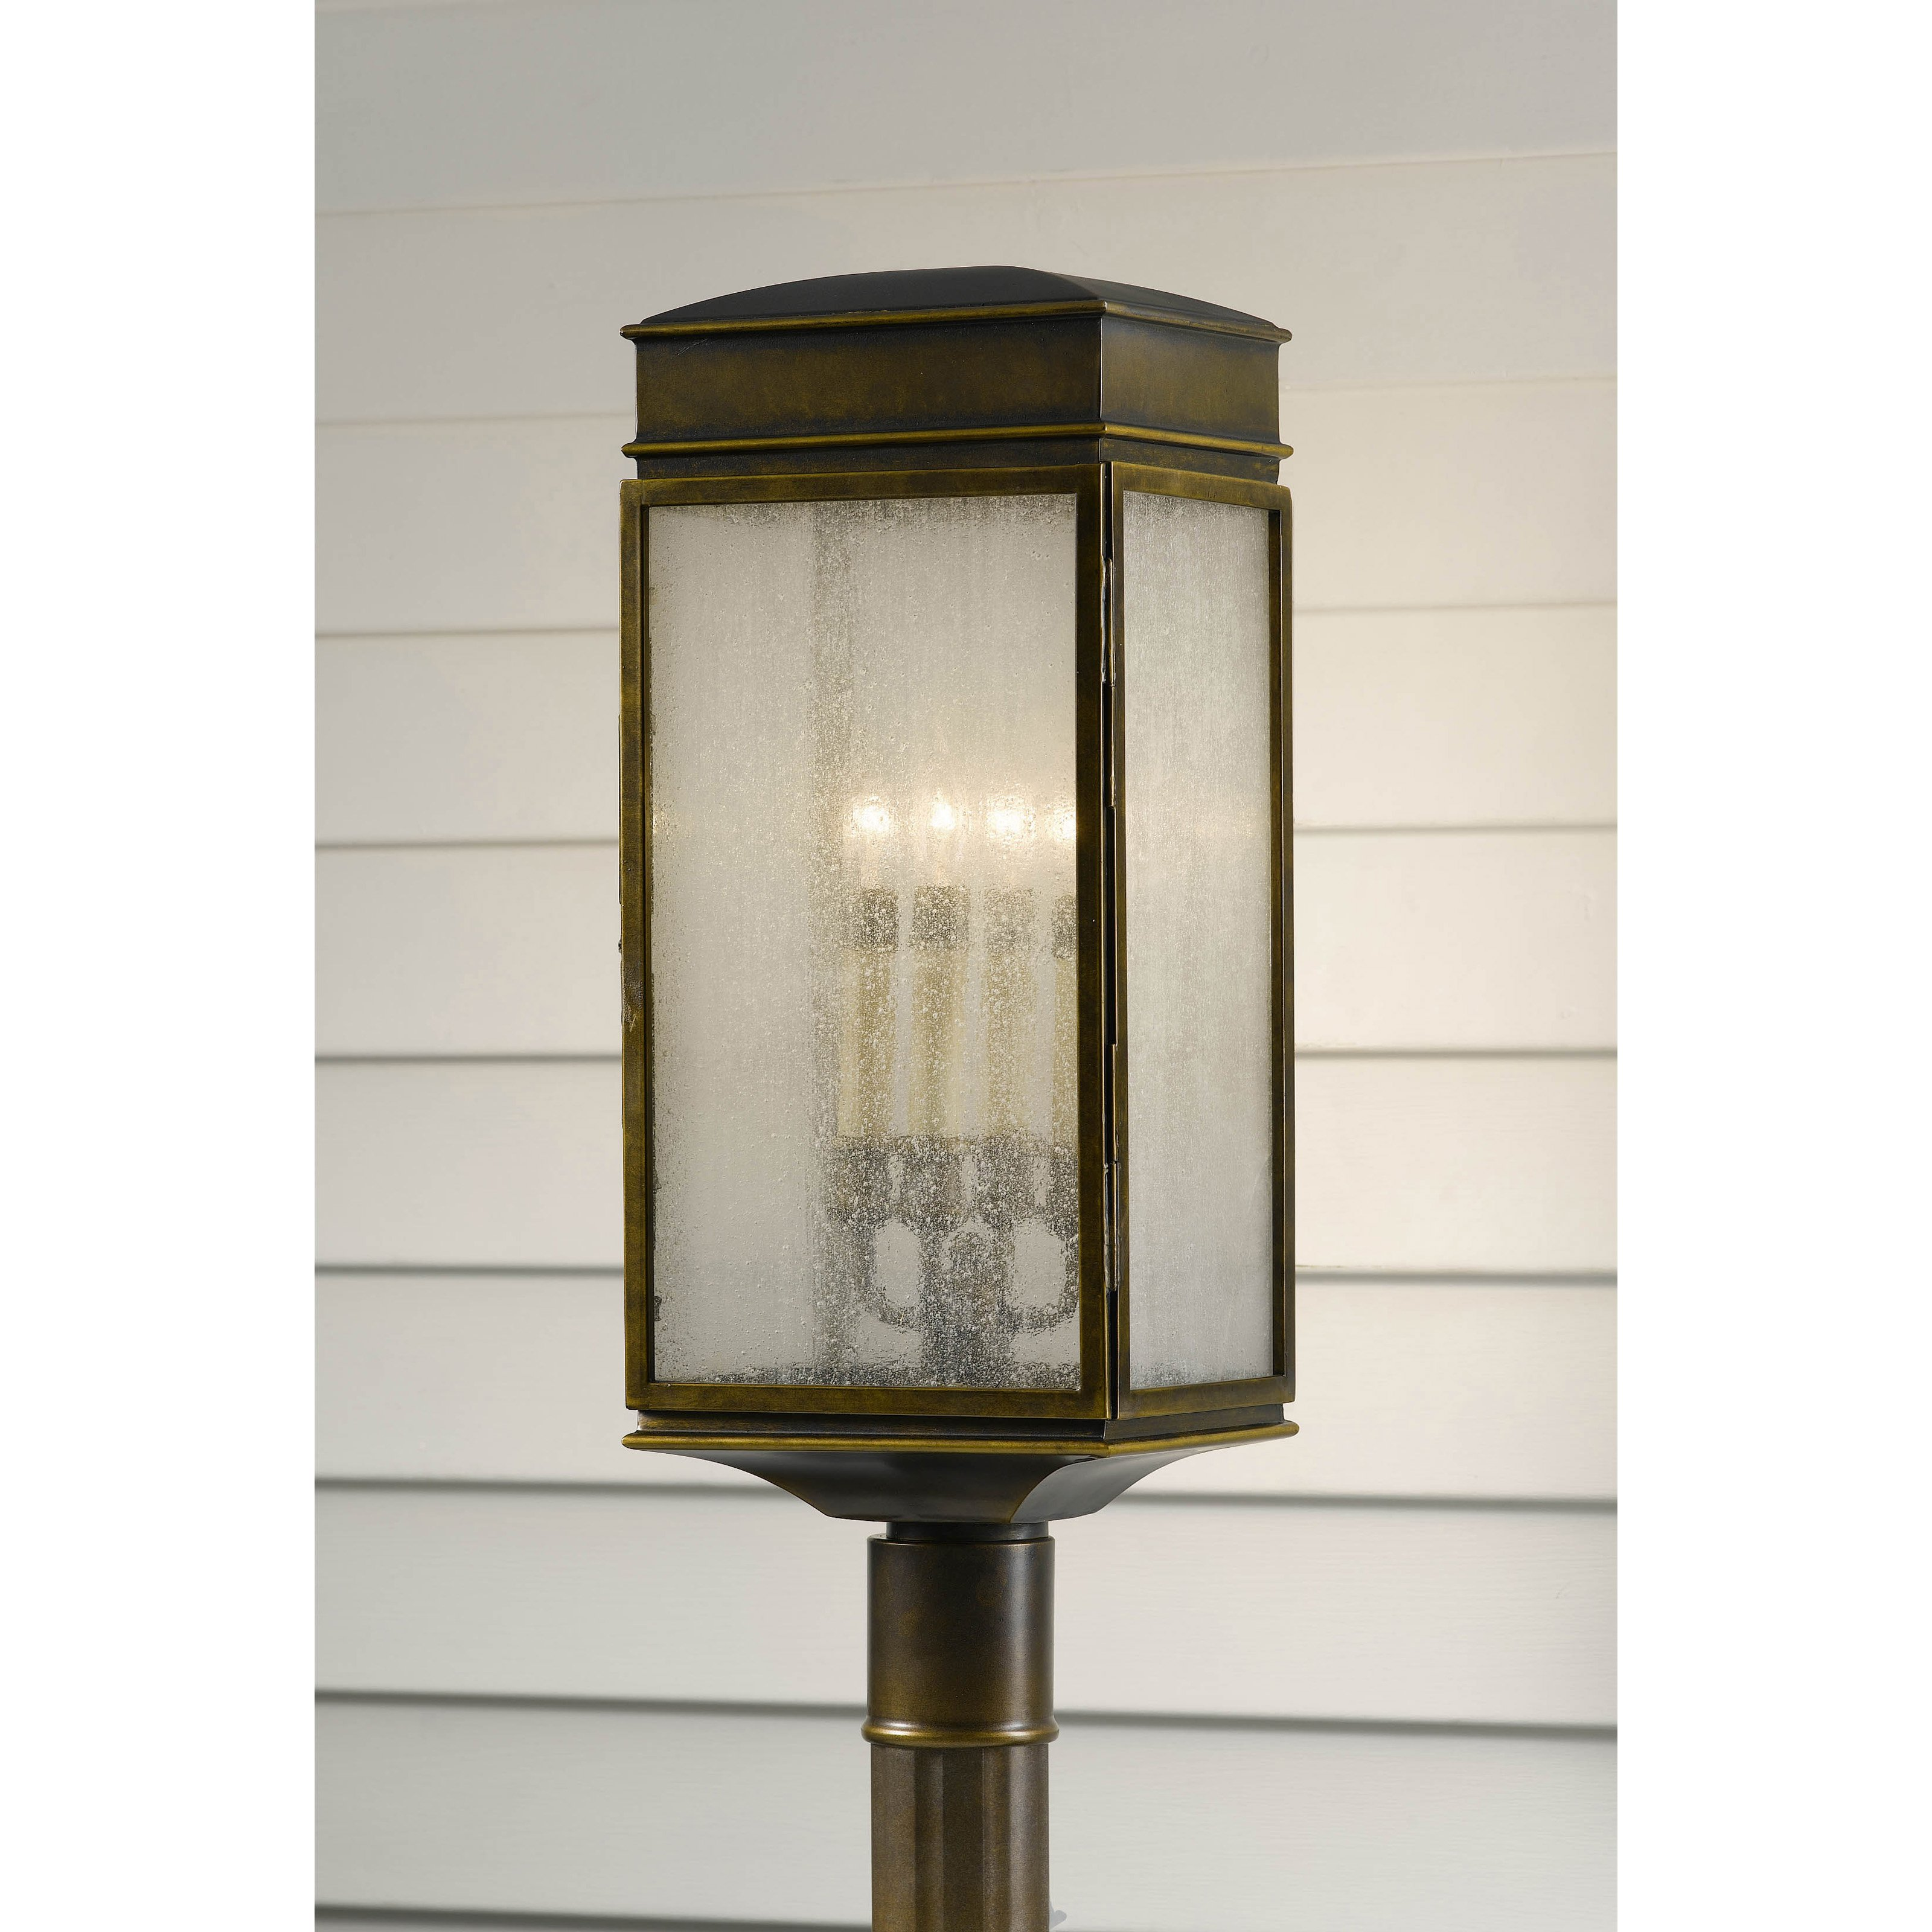 Feiss Whitaker OL7407ASTB Outdoor Post Lantern 9W in. Astral Bronze by Murray Feiss